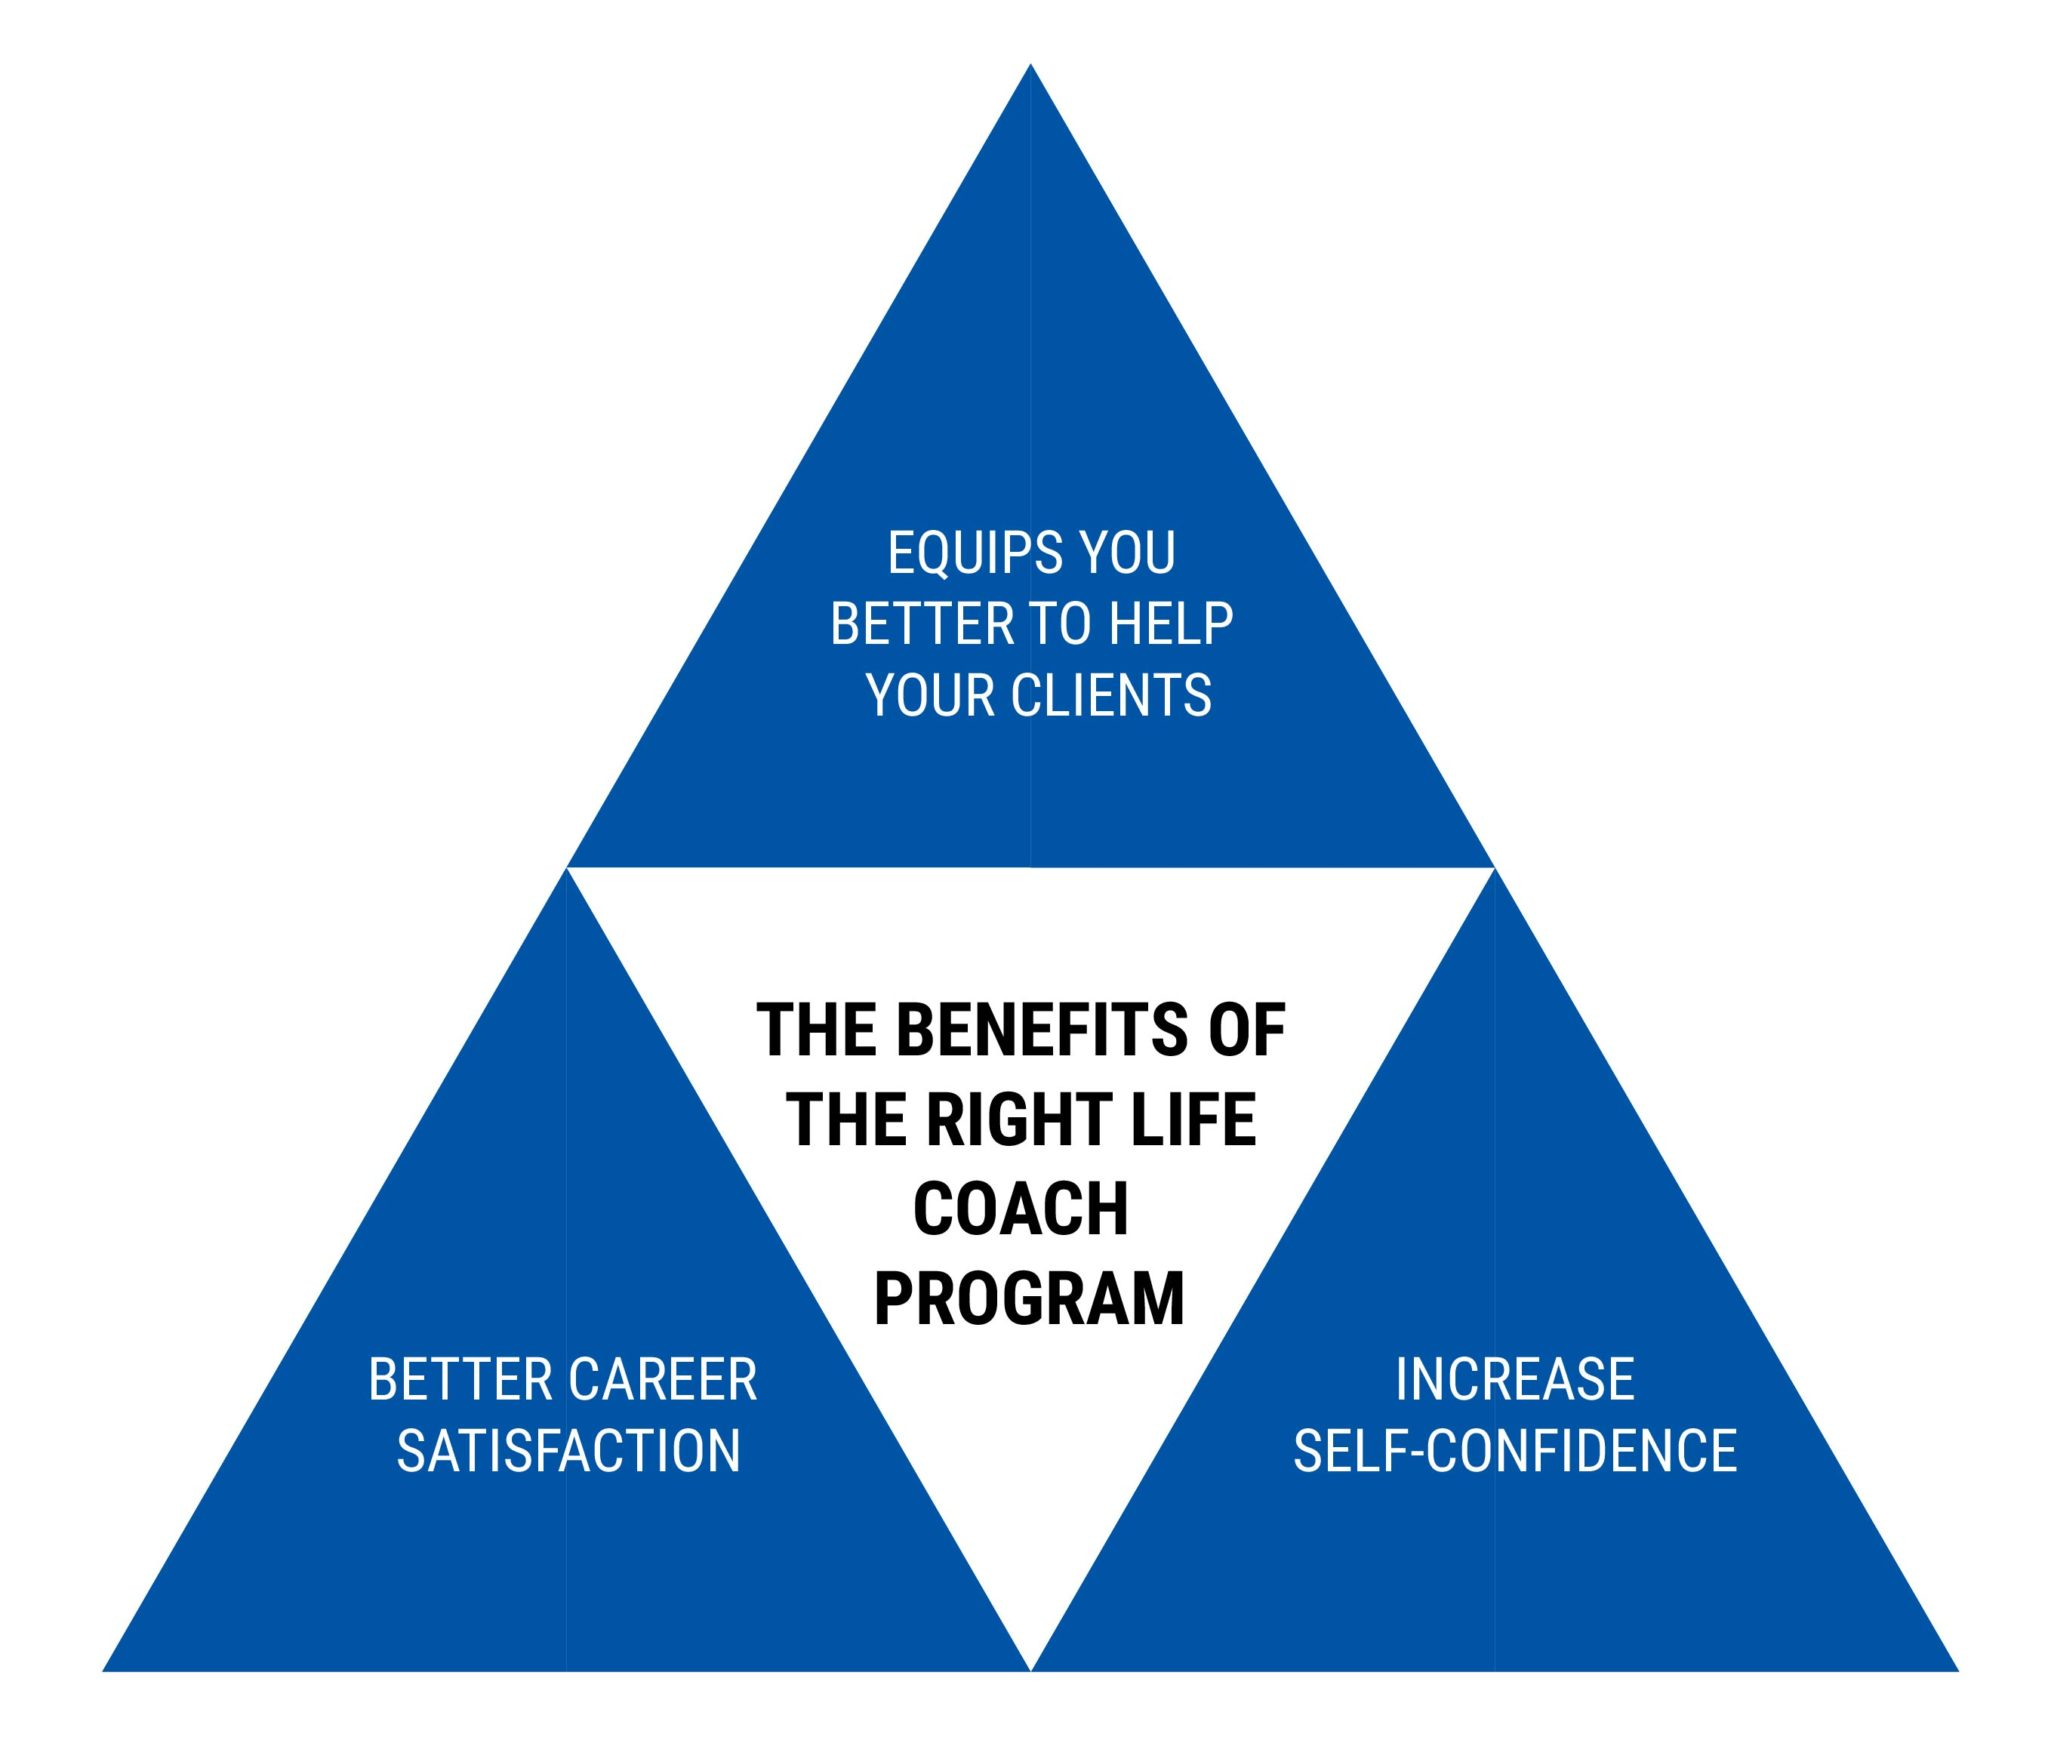 THE BENEFITS OF THE RIGHT LIFE COACHING PROGRAM